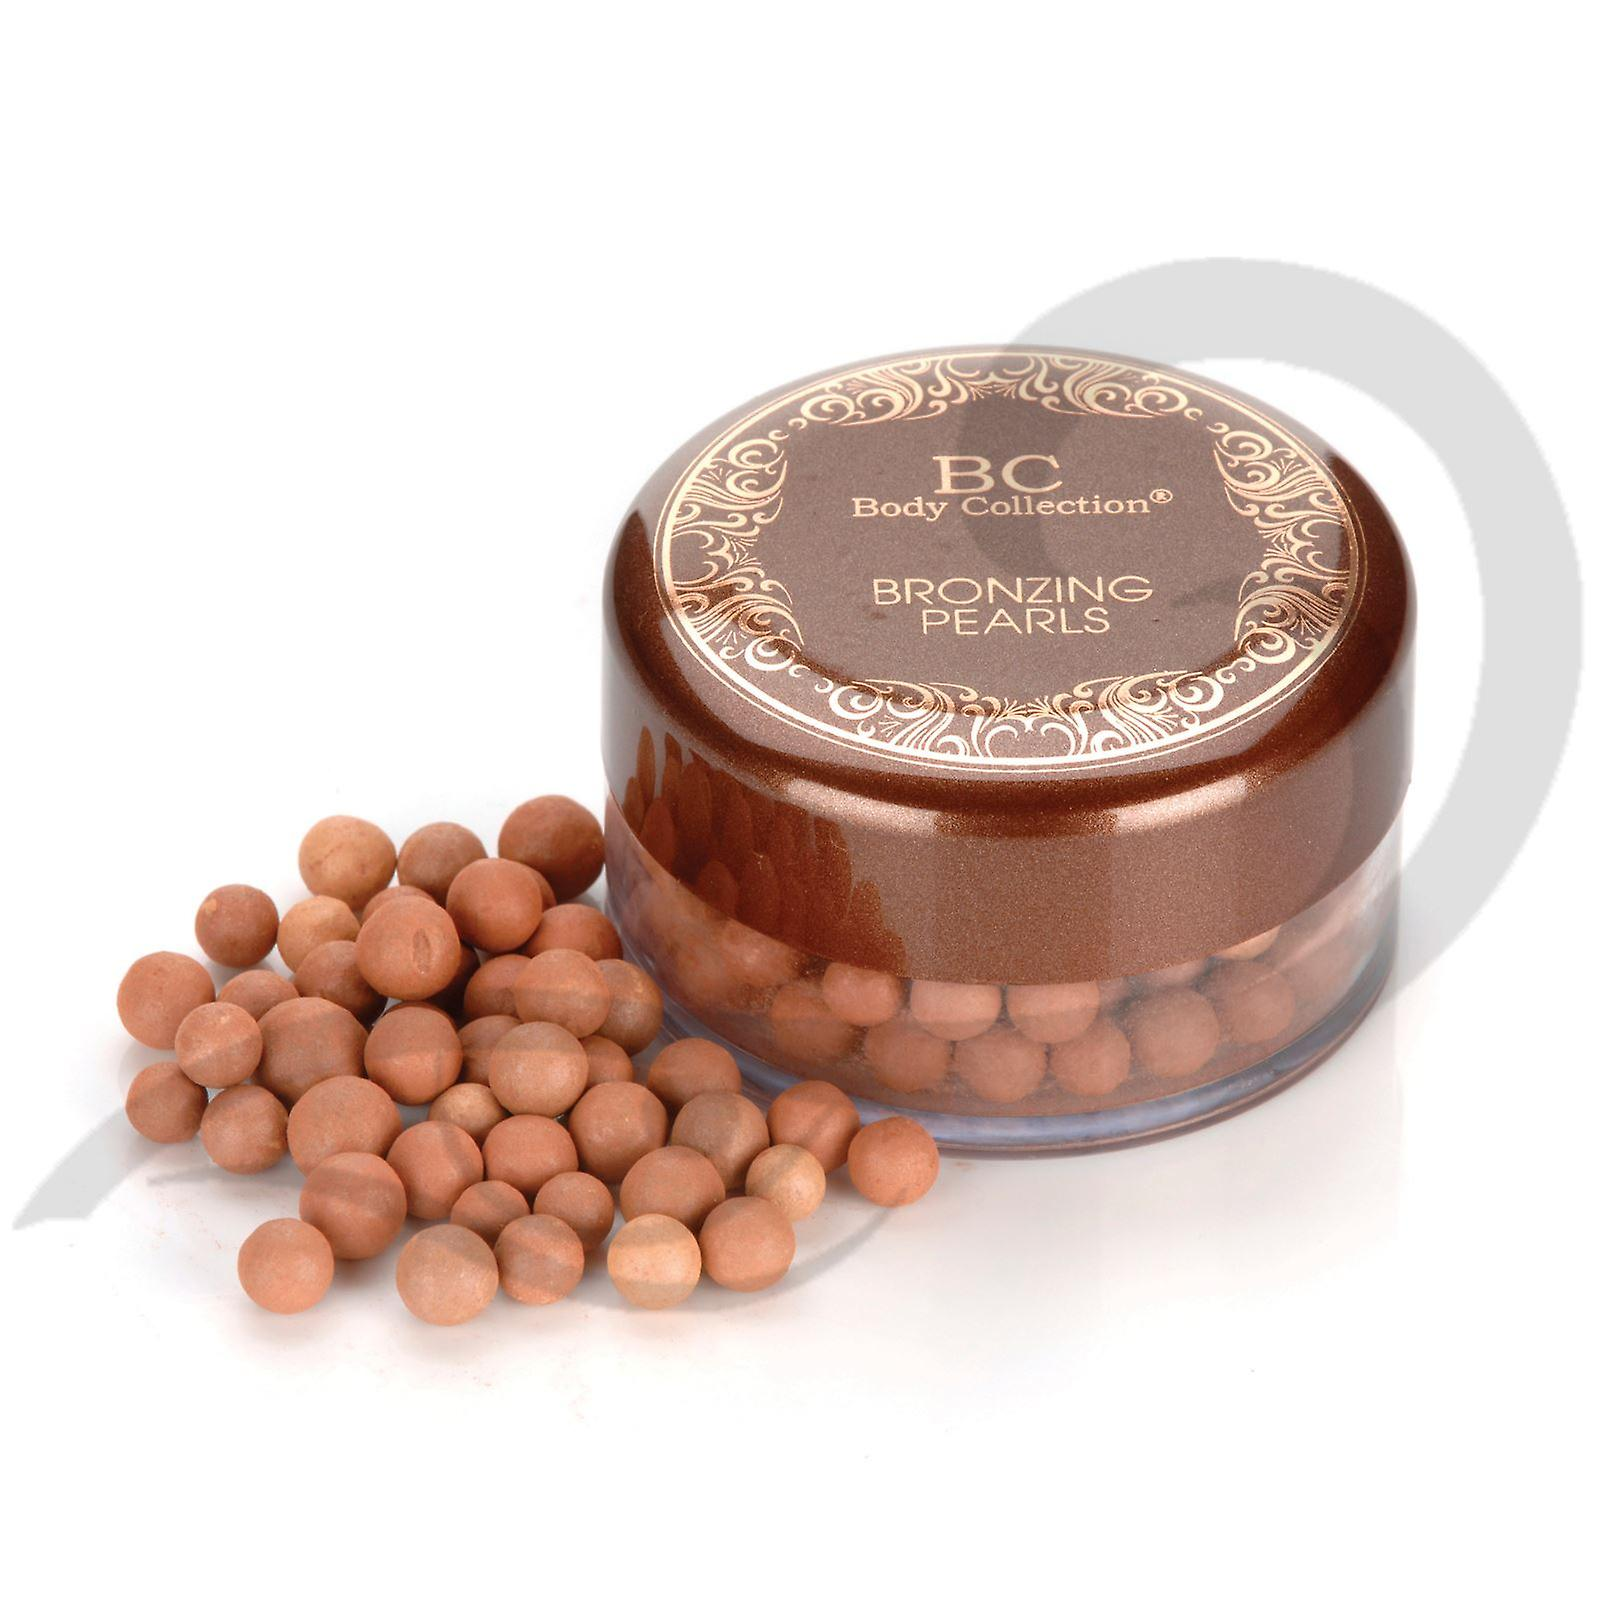 Body Collection Bronzer Bronzing Pearls